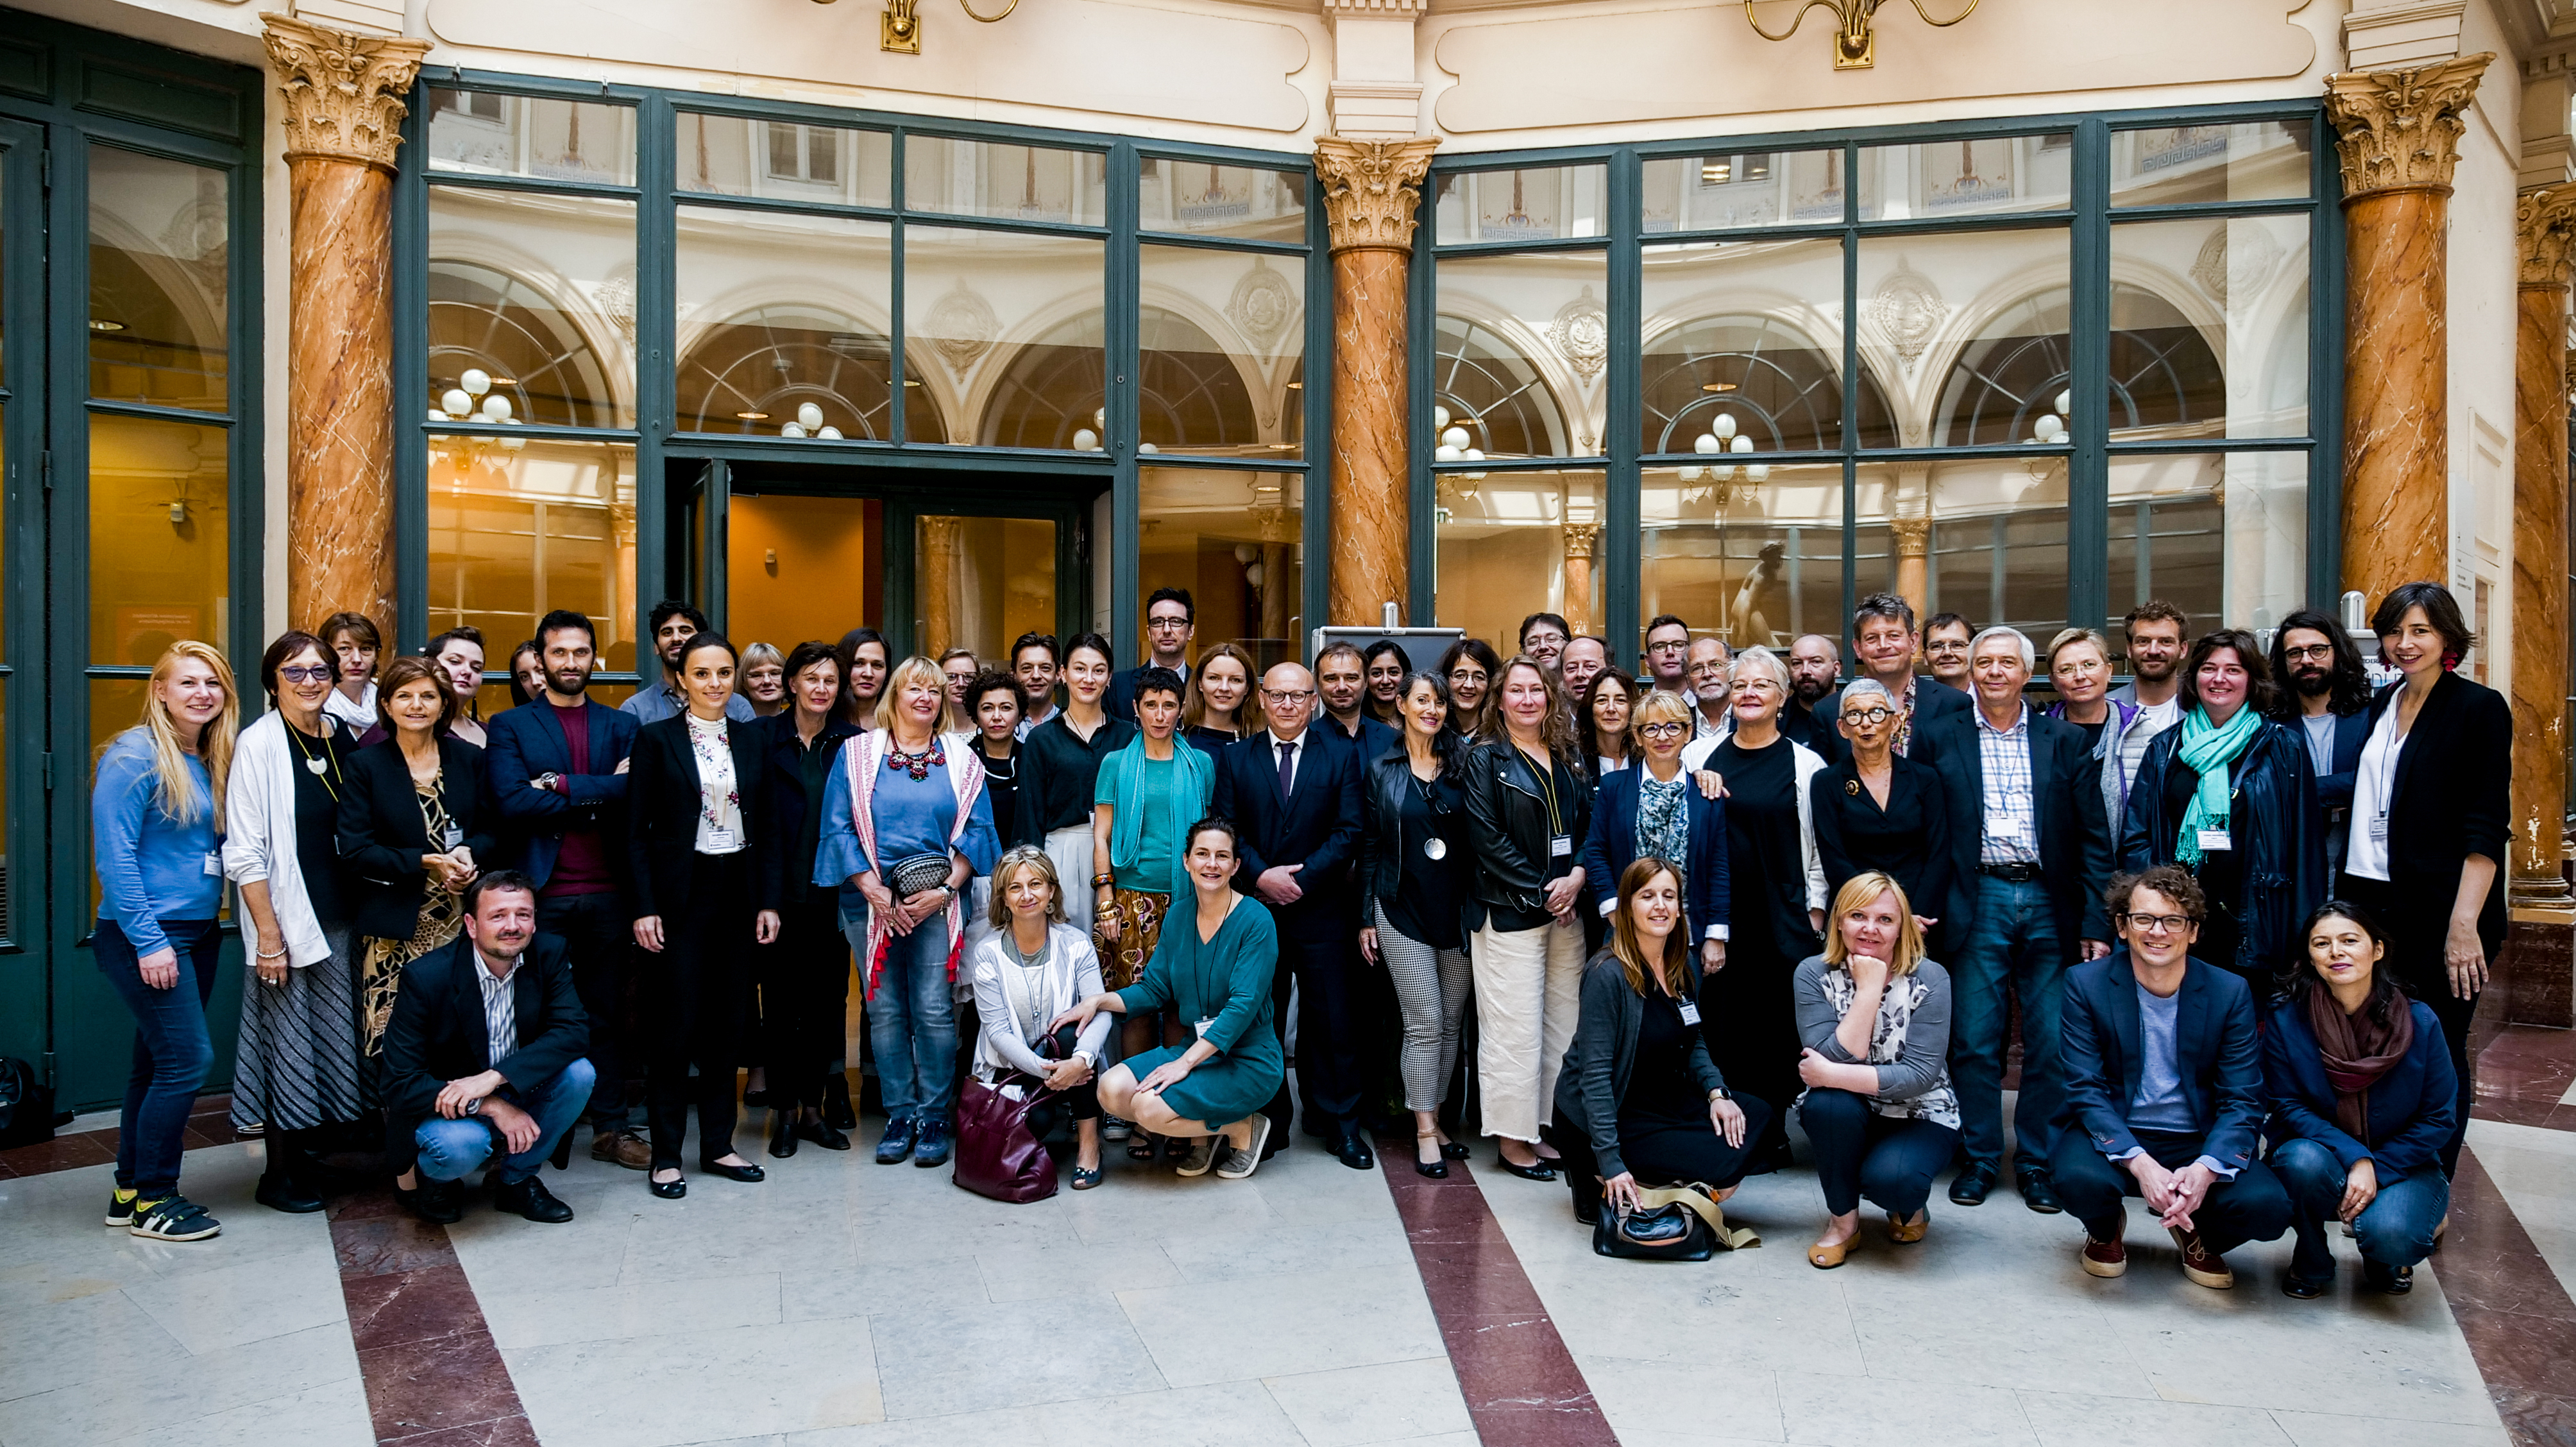 Assembly group picture at the Institut national d'histoire de l'art in Paris, France